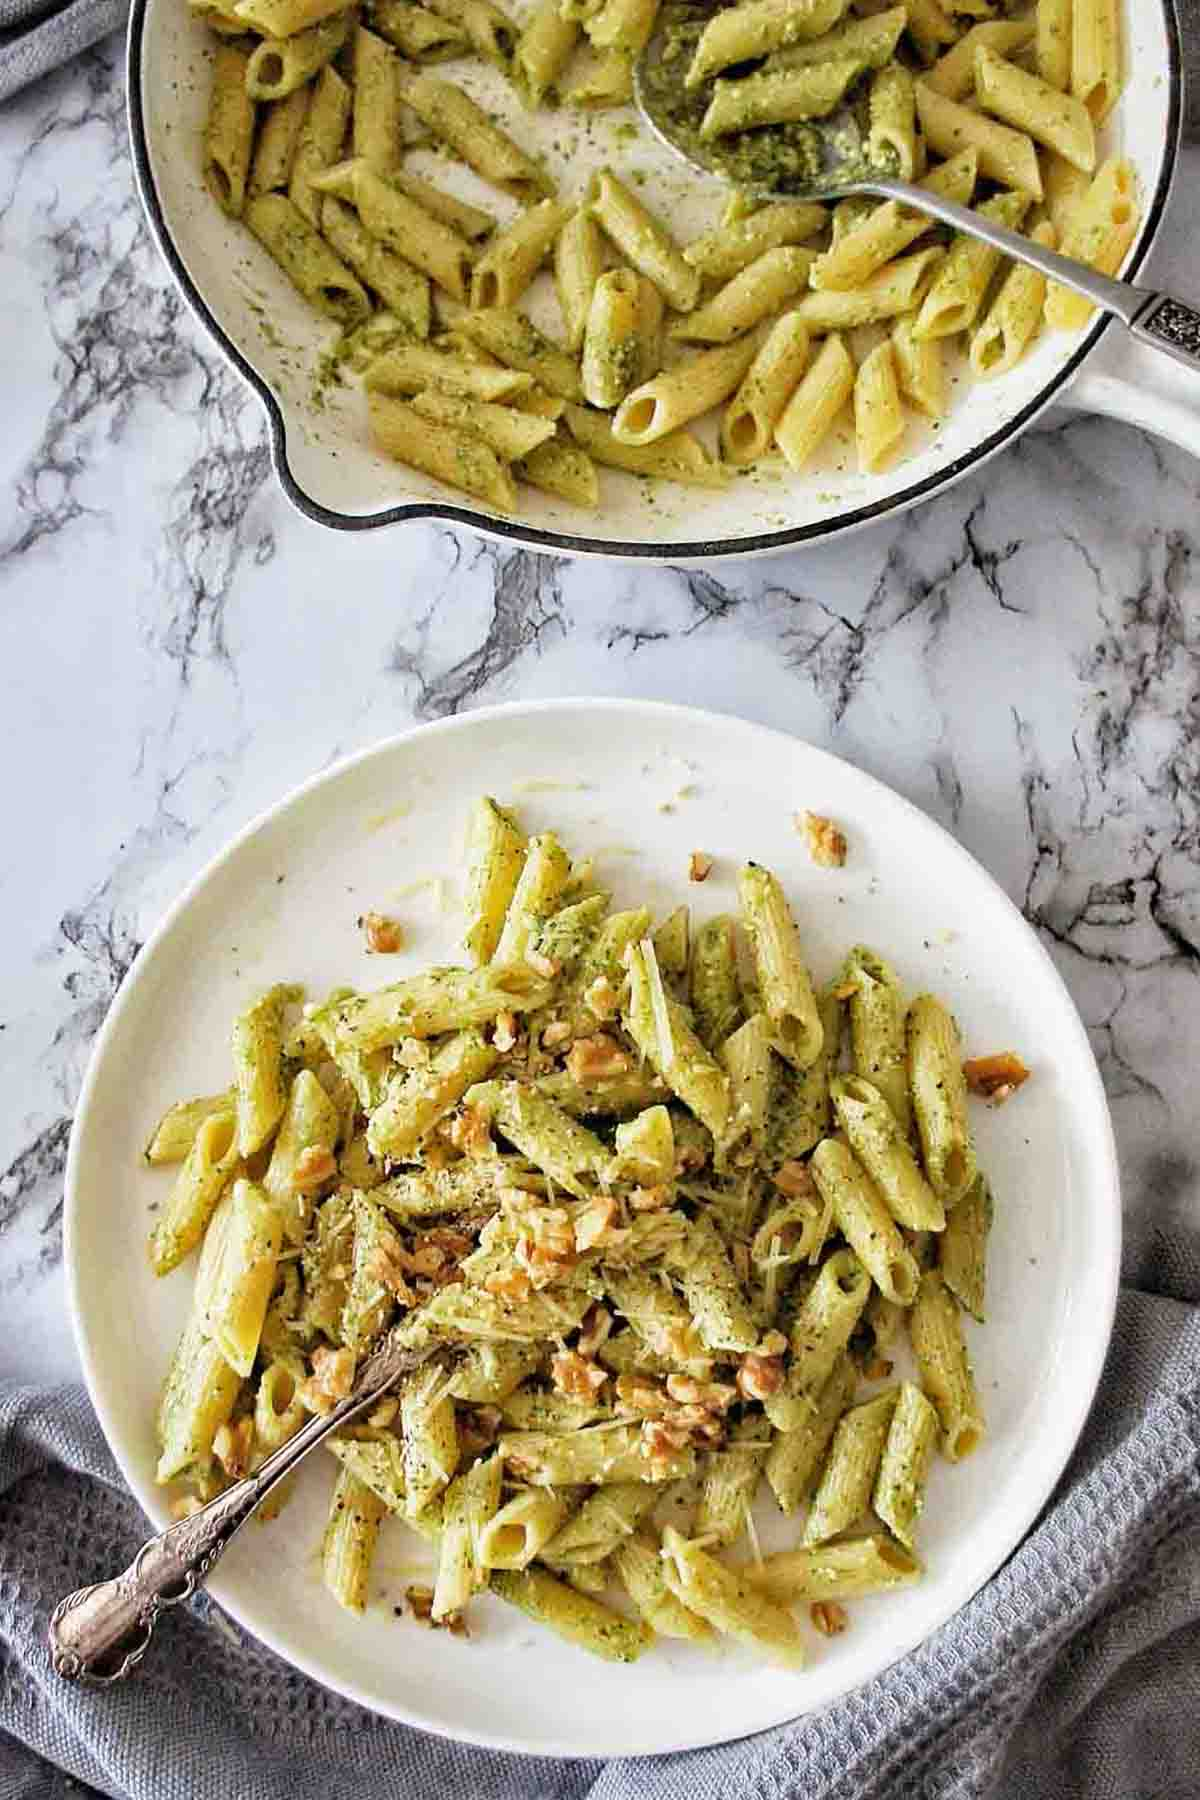 Pesto penne on a plate with white skillet full of more pasta above